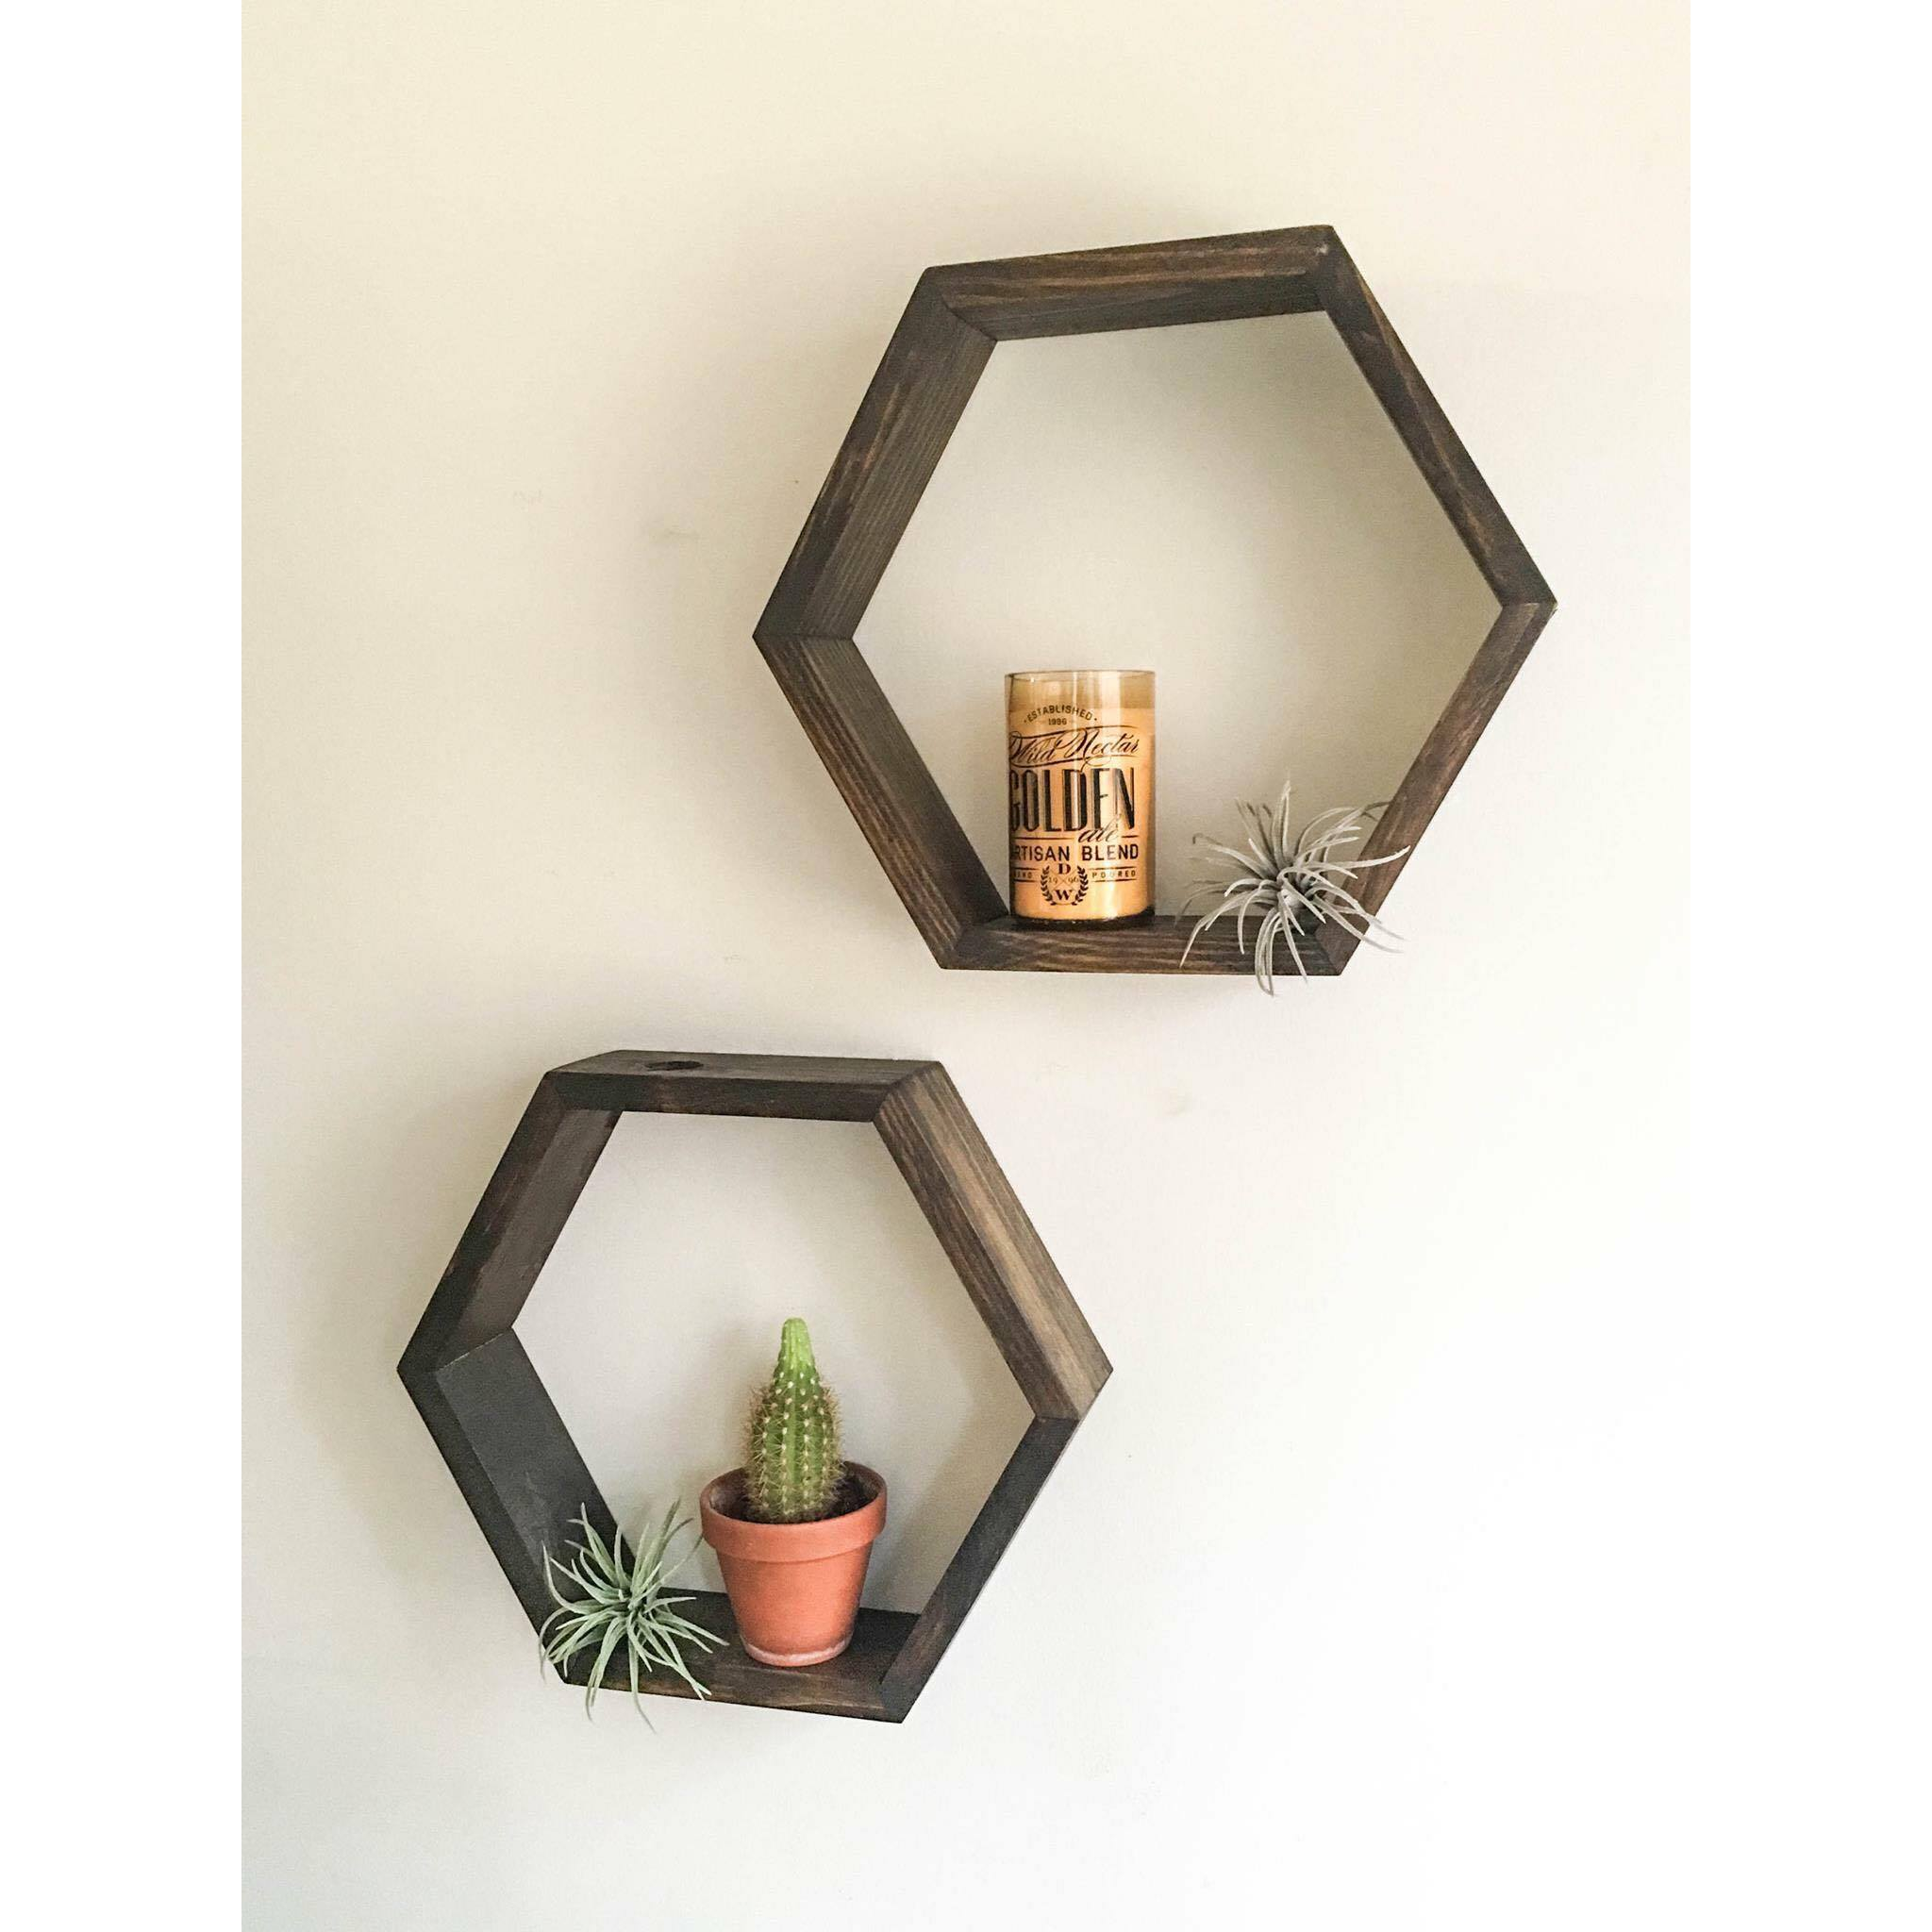 Honeycomb shelf hexagon shelf crystal shelf shadow box honeycomb shelf hexagon shelf crystal shelf shadow box wood shelf floating amipublicfo Gallery